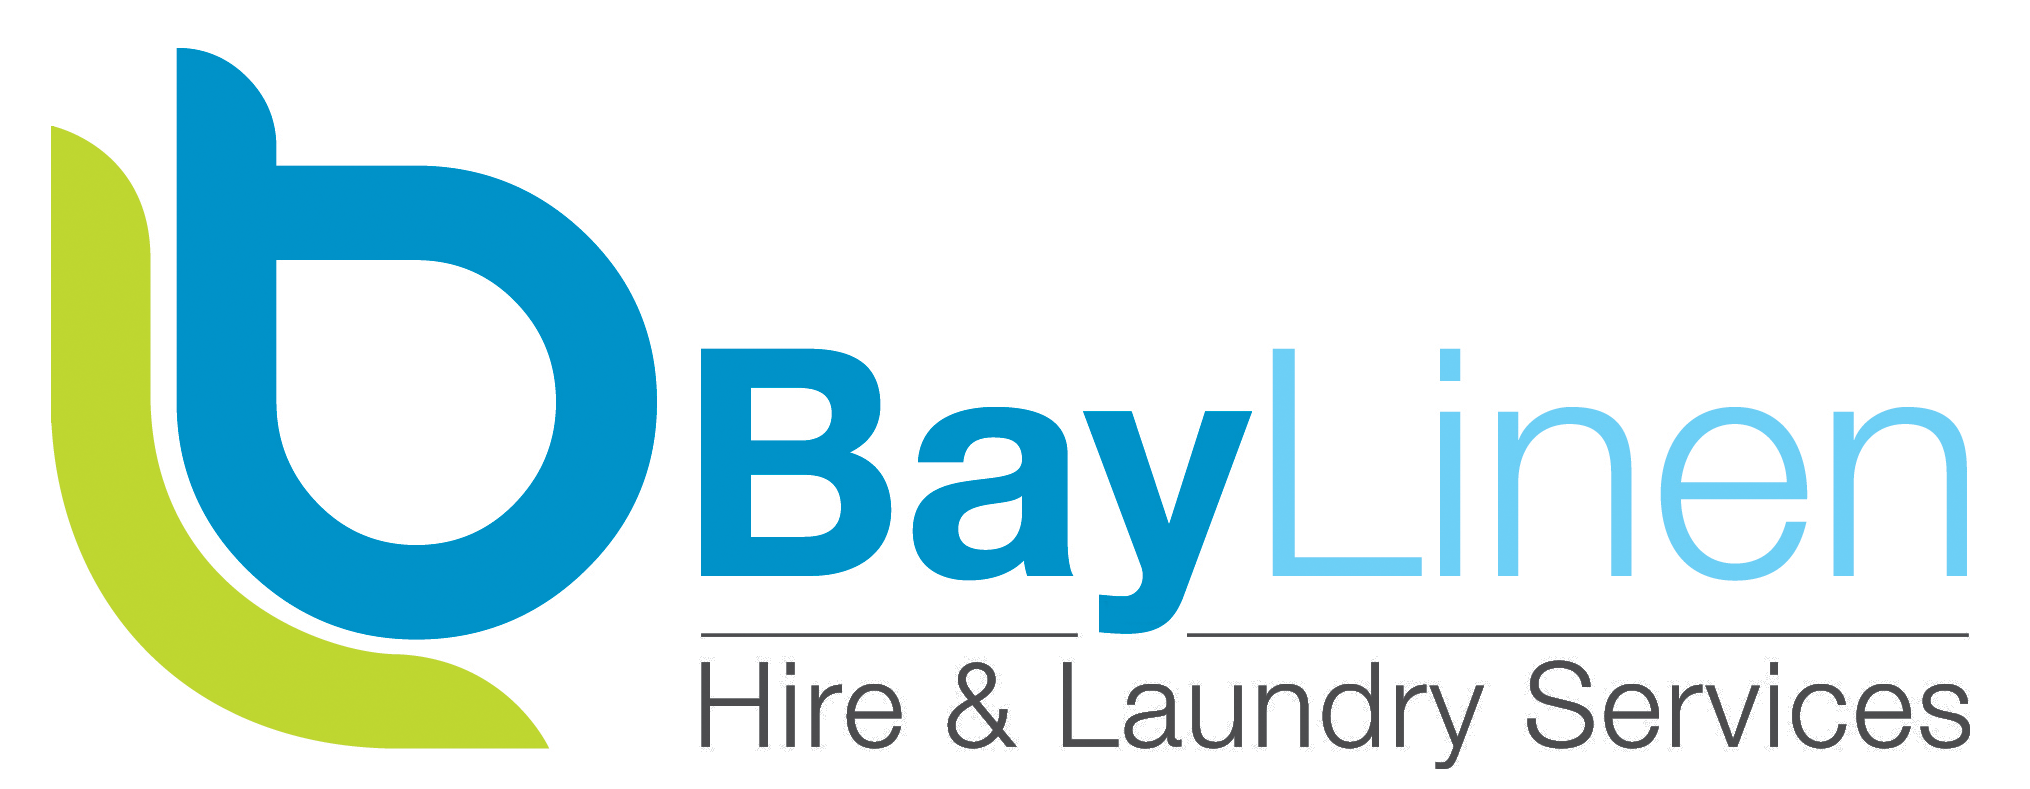 BayLinen Hire & Laundry Services